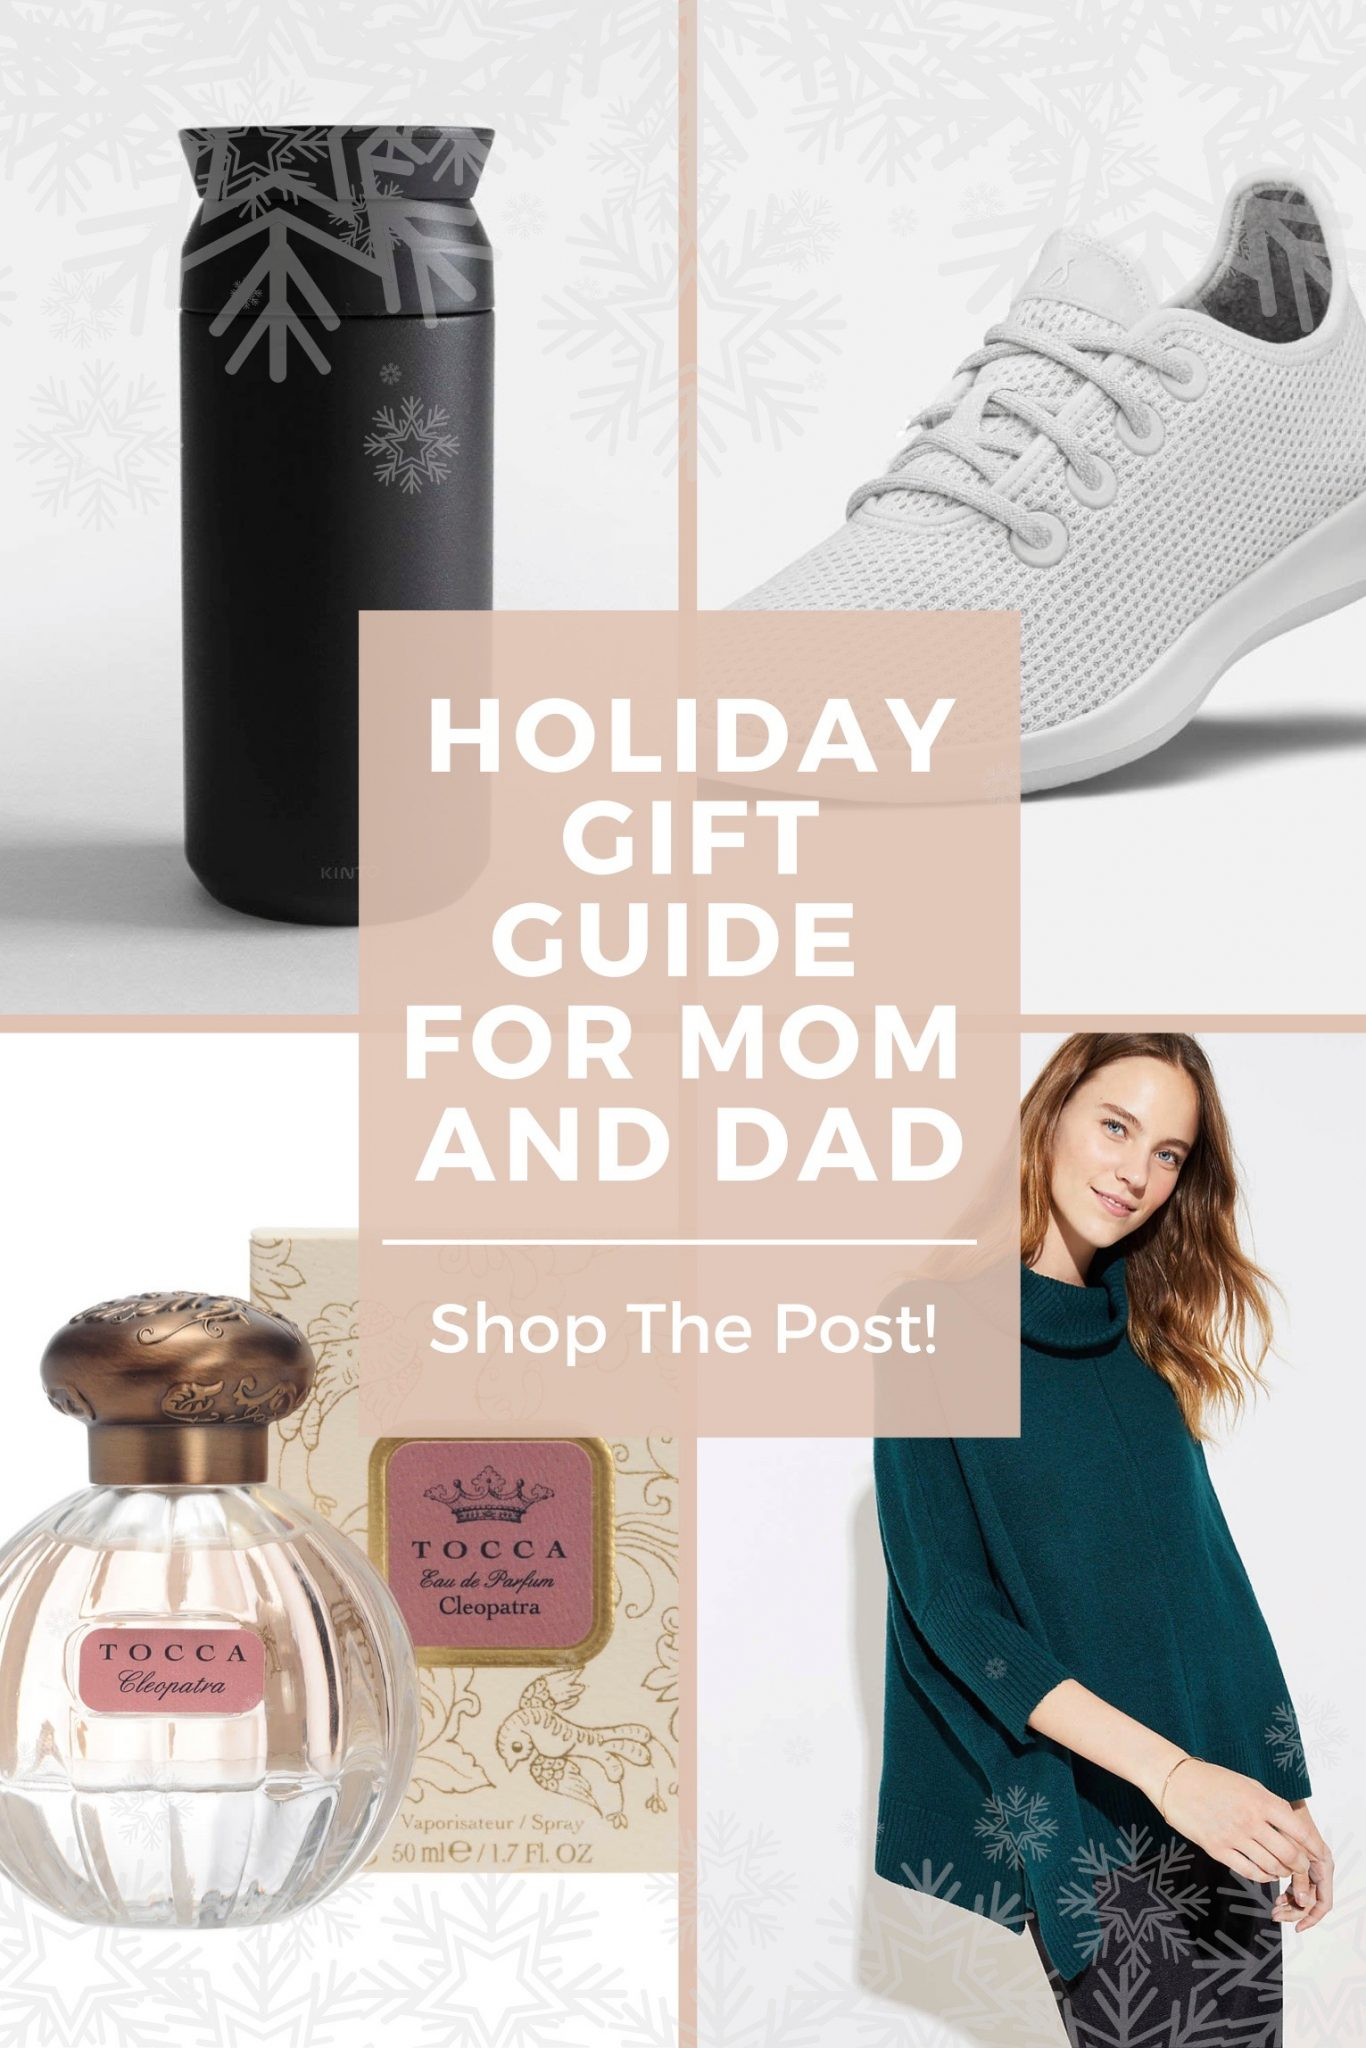 gift guide for mom and dad parents holiday gift guides present ideas thestylewright the stylewright kasey ma christmas hannukkah nordstrom rack rituals ugg art of shaving